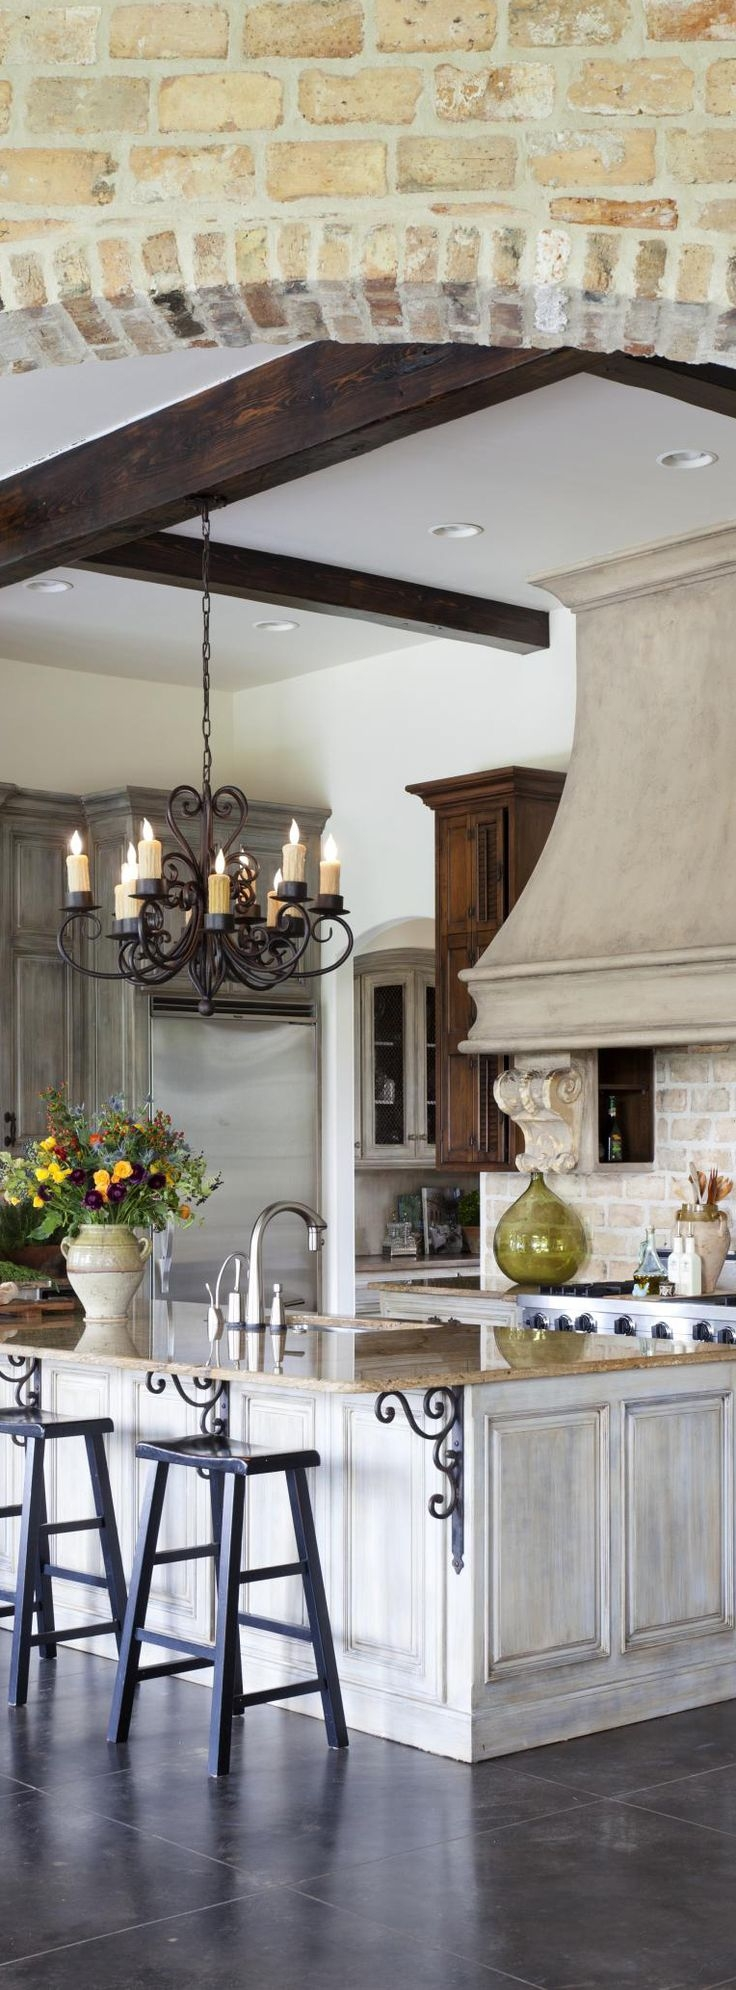 Best 25 French Country Chandelier Ideas On Pinterest French With French Country Chandeliers For Kitchen (Image 3 of 25)